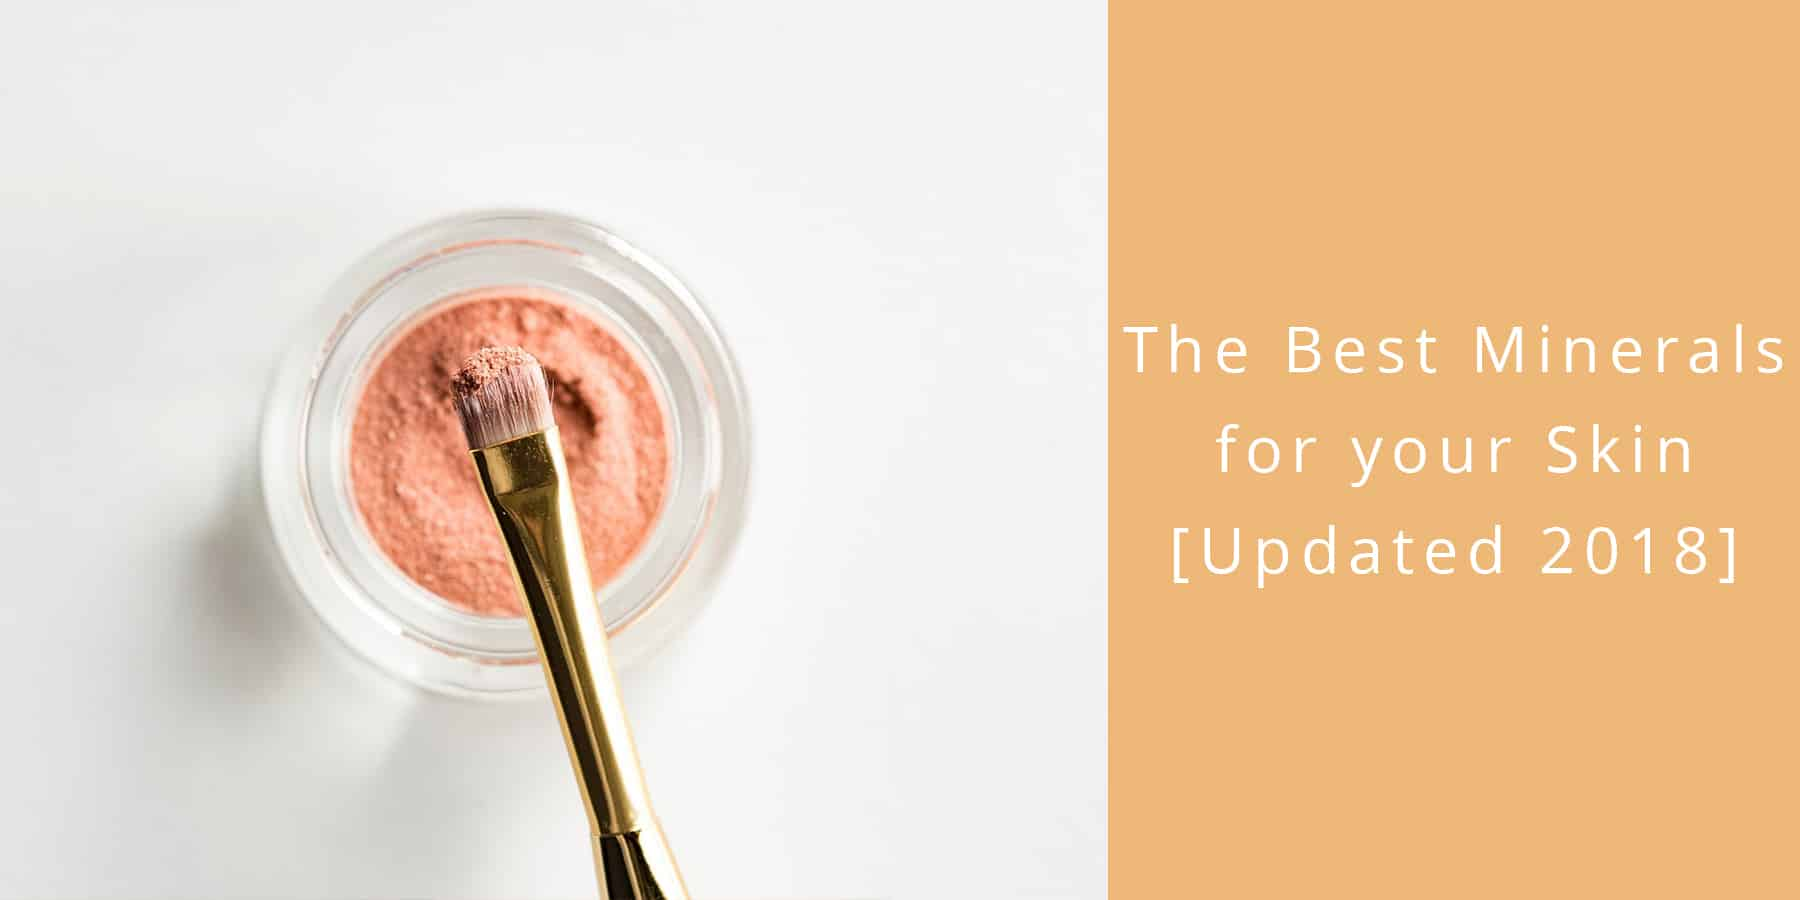 The Best Minerals for your Skin [Updated 2018]